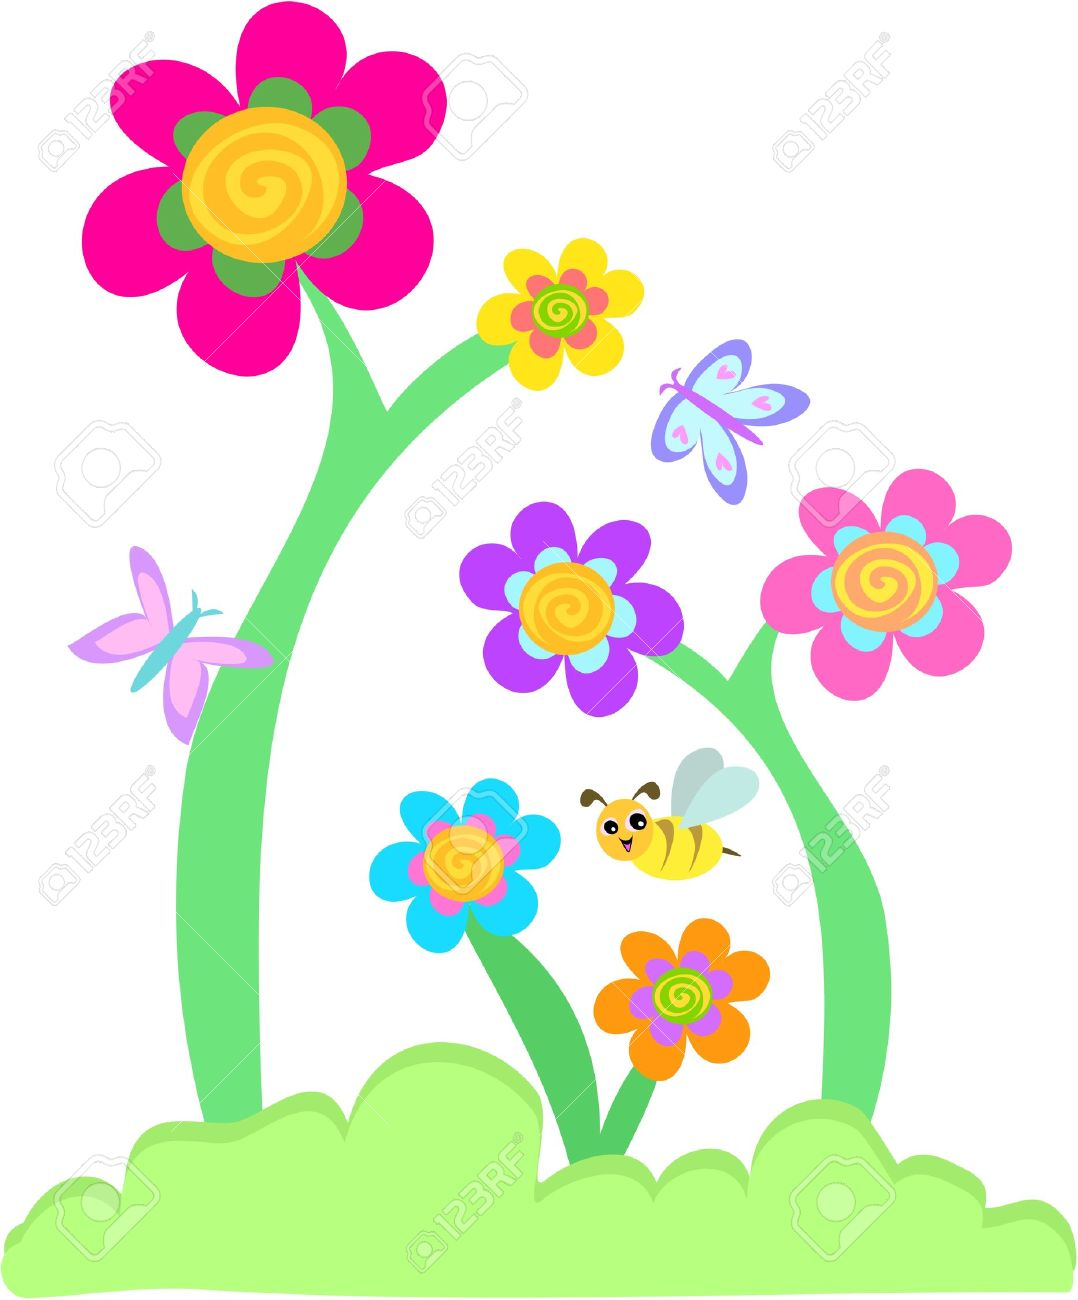 clipart flowers and butterflies at getdrawings com free for rh getdrawings com pink flowers and butterflies clipart spring flowers and butterflies clipart